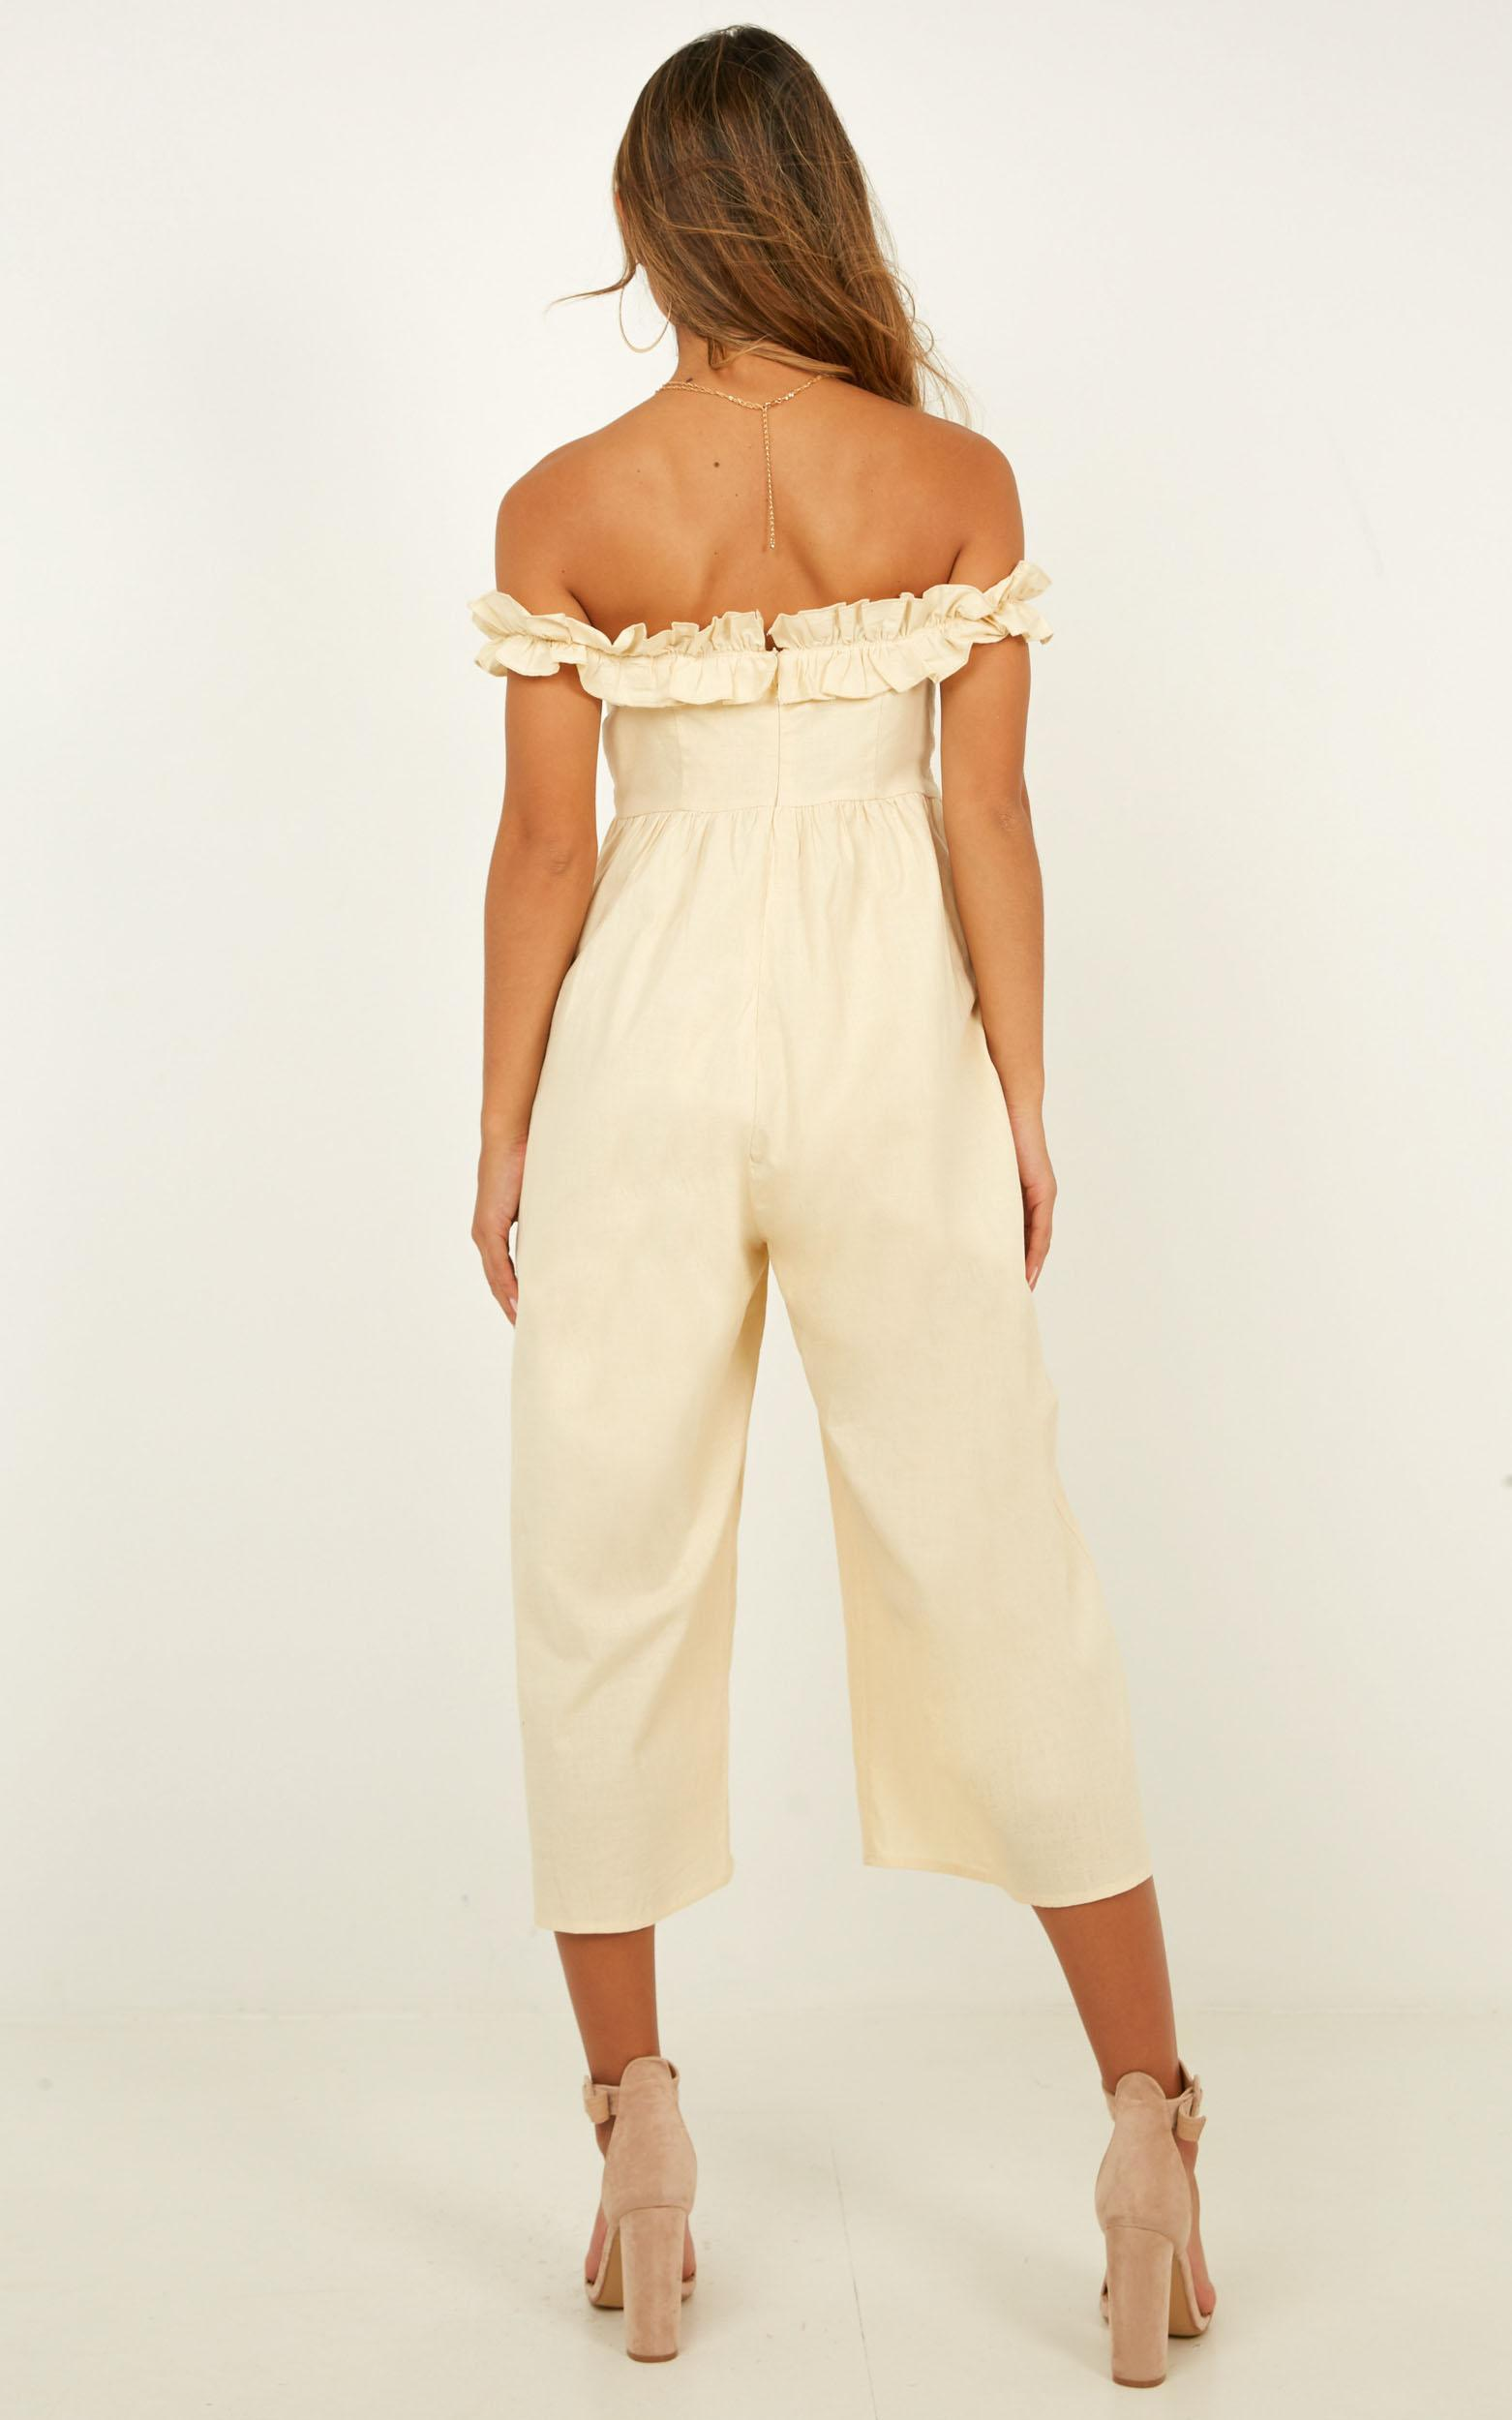 For Your Eyes Jumpsuit In natural linen look - 20 (XXXXL), Beige, hi-res image number null